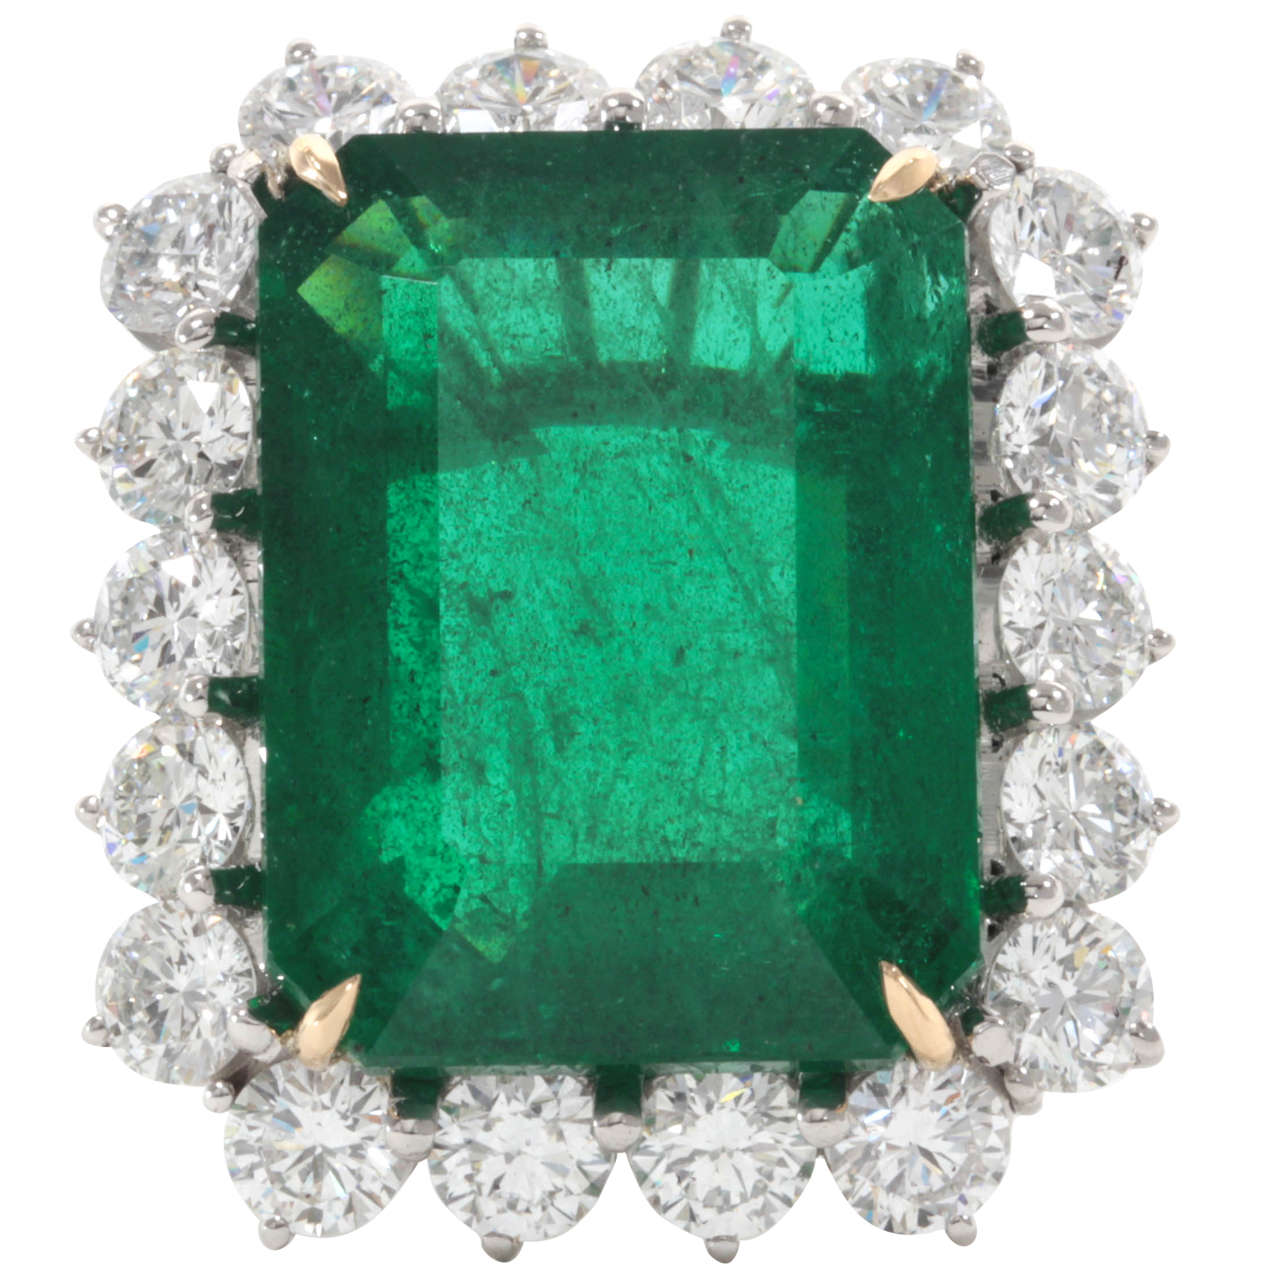 diamond and earrings old image emerald jewelry mine colored unenhanced estate gemstones